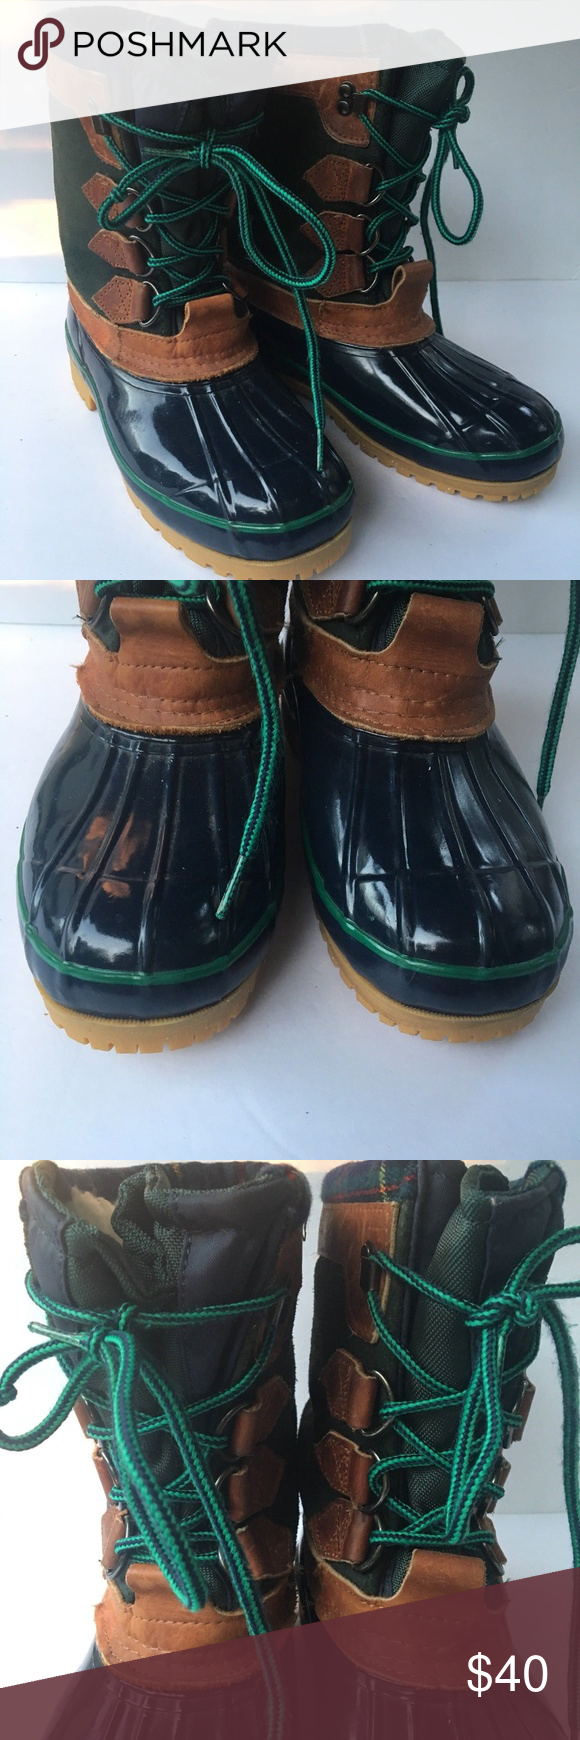 Eddie Bauer Rubber Duck Boots Tall Snow Rain Shoes for